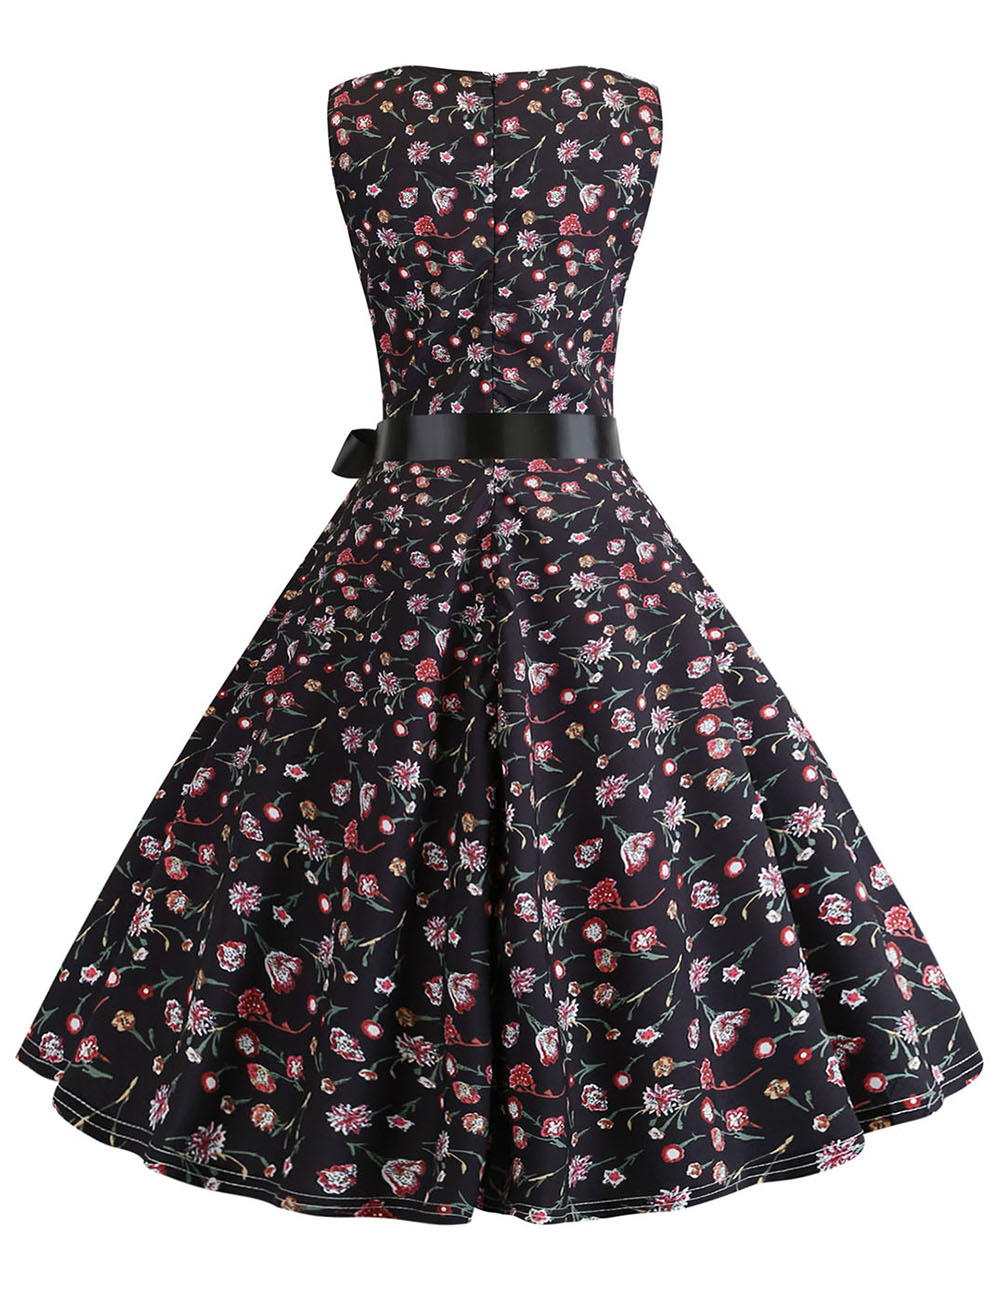 //cdn.affectcloud.com/feelingirldress/upload/imgs/2019-06-10/VZ190452-M11/VZ190452-M11-2.jpg